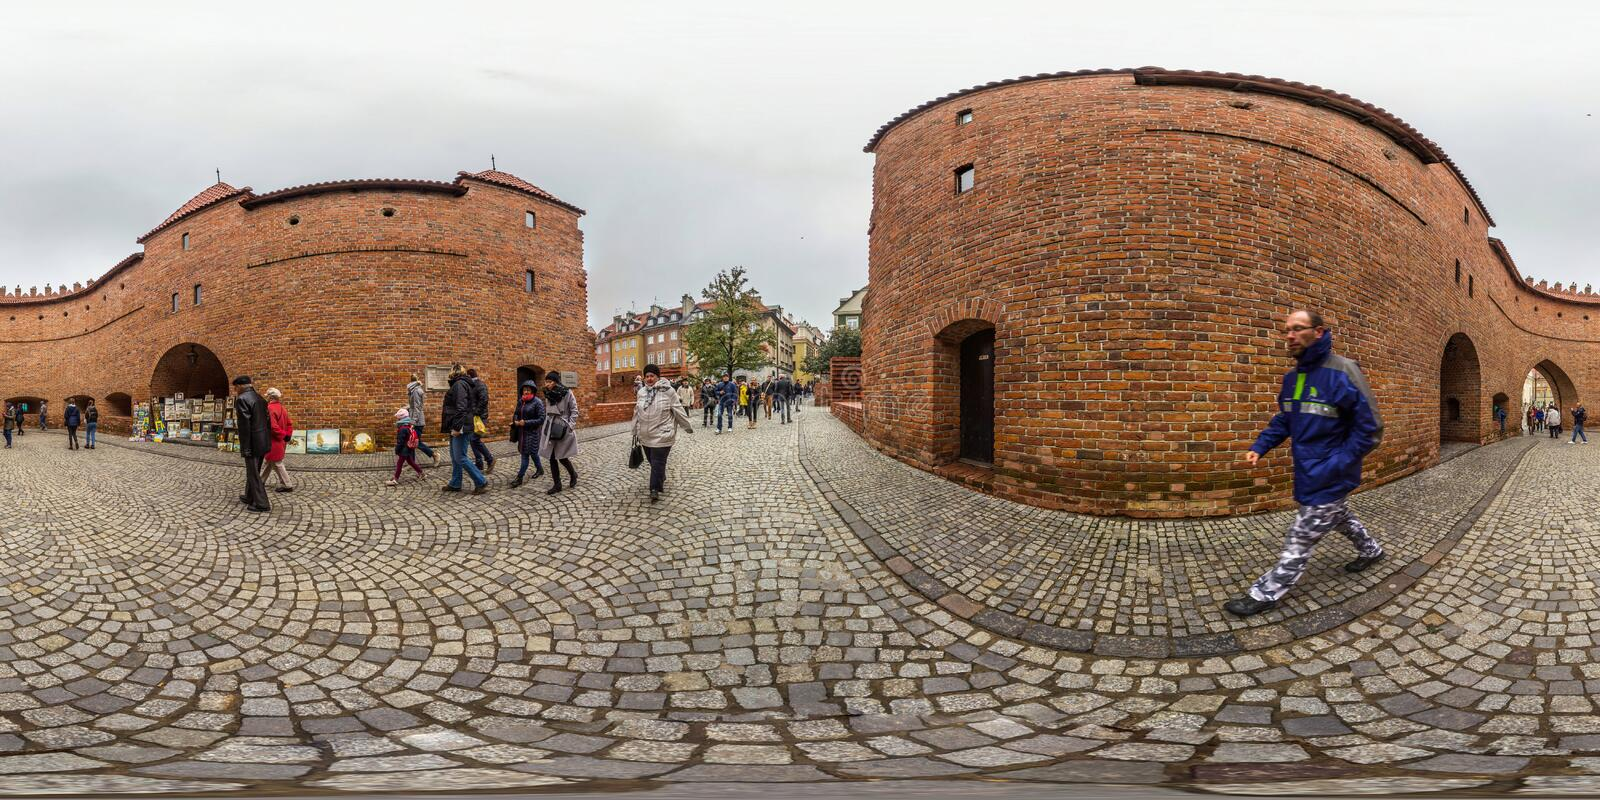 Warsaw, Poland - 2018 3D spherical panorama with 360 degree viewing angle of Old Town. Ready for virtual reality in vr. Full royalty free stock photos